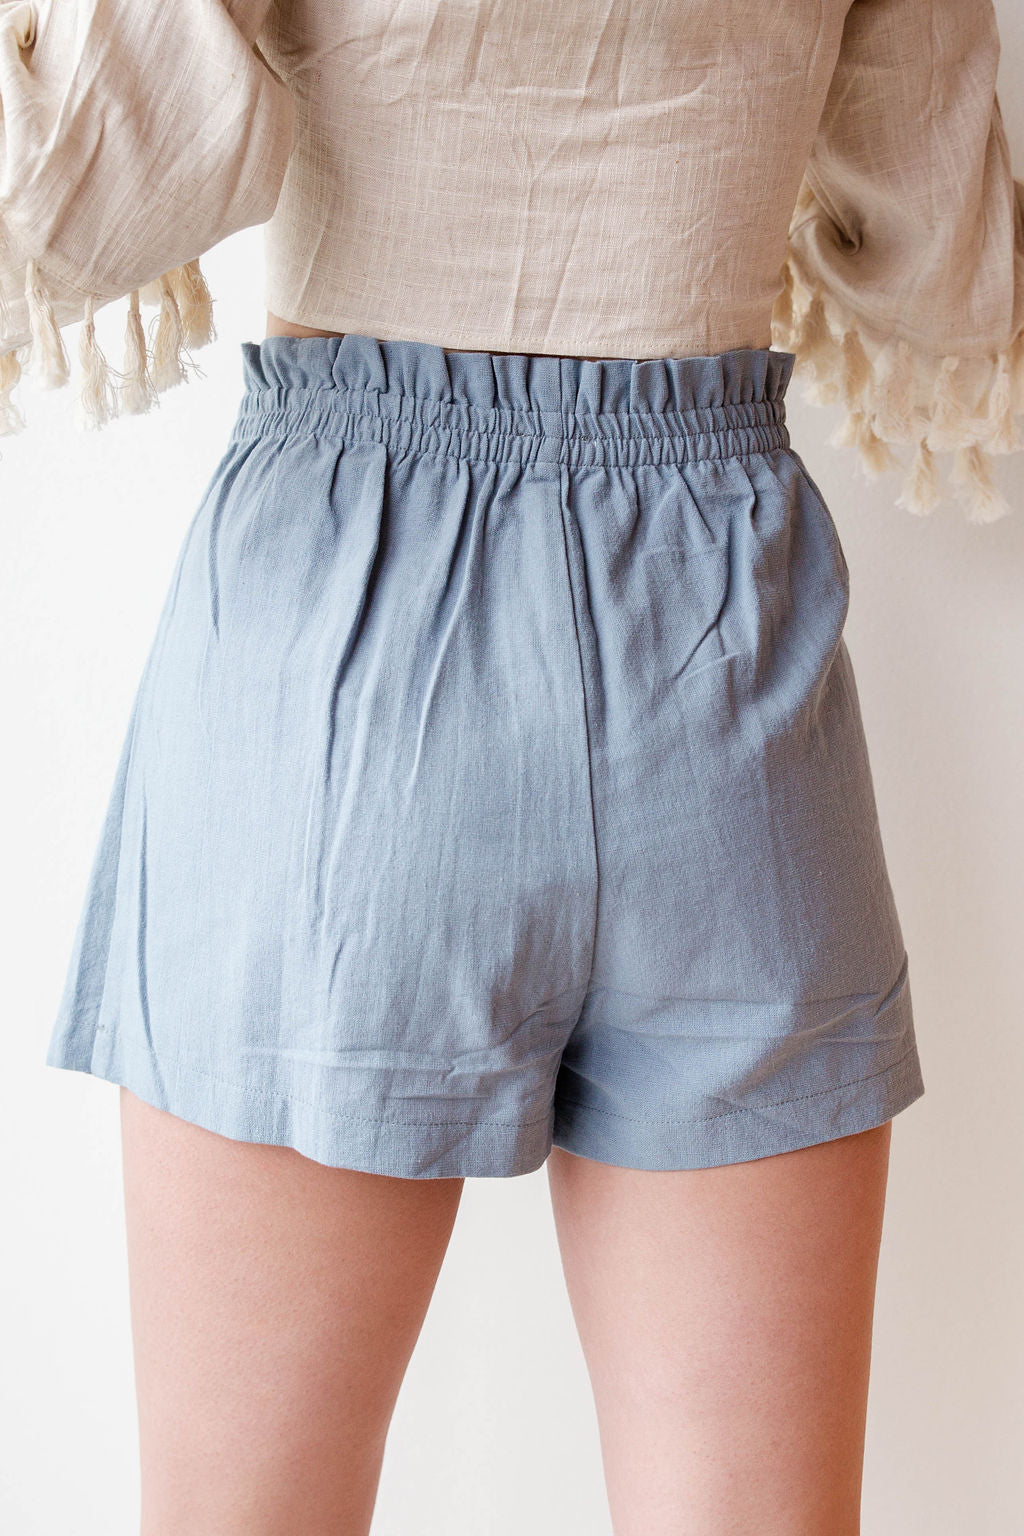 mode, it's you denim skirt